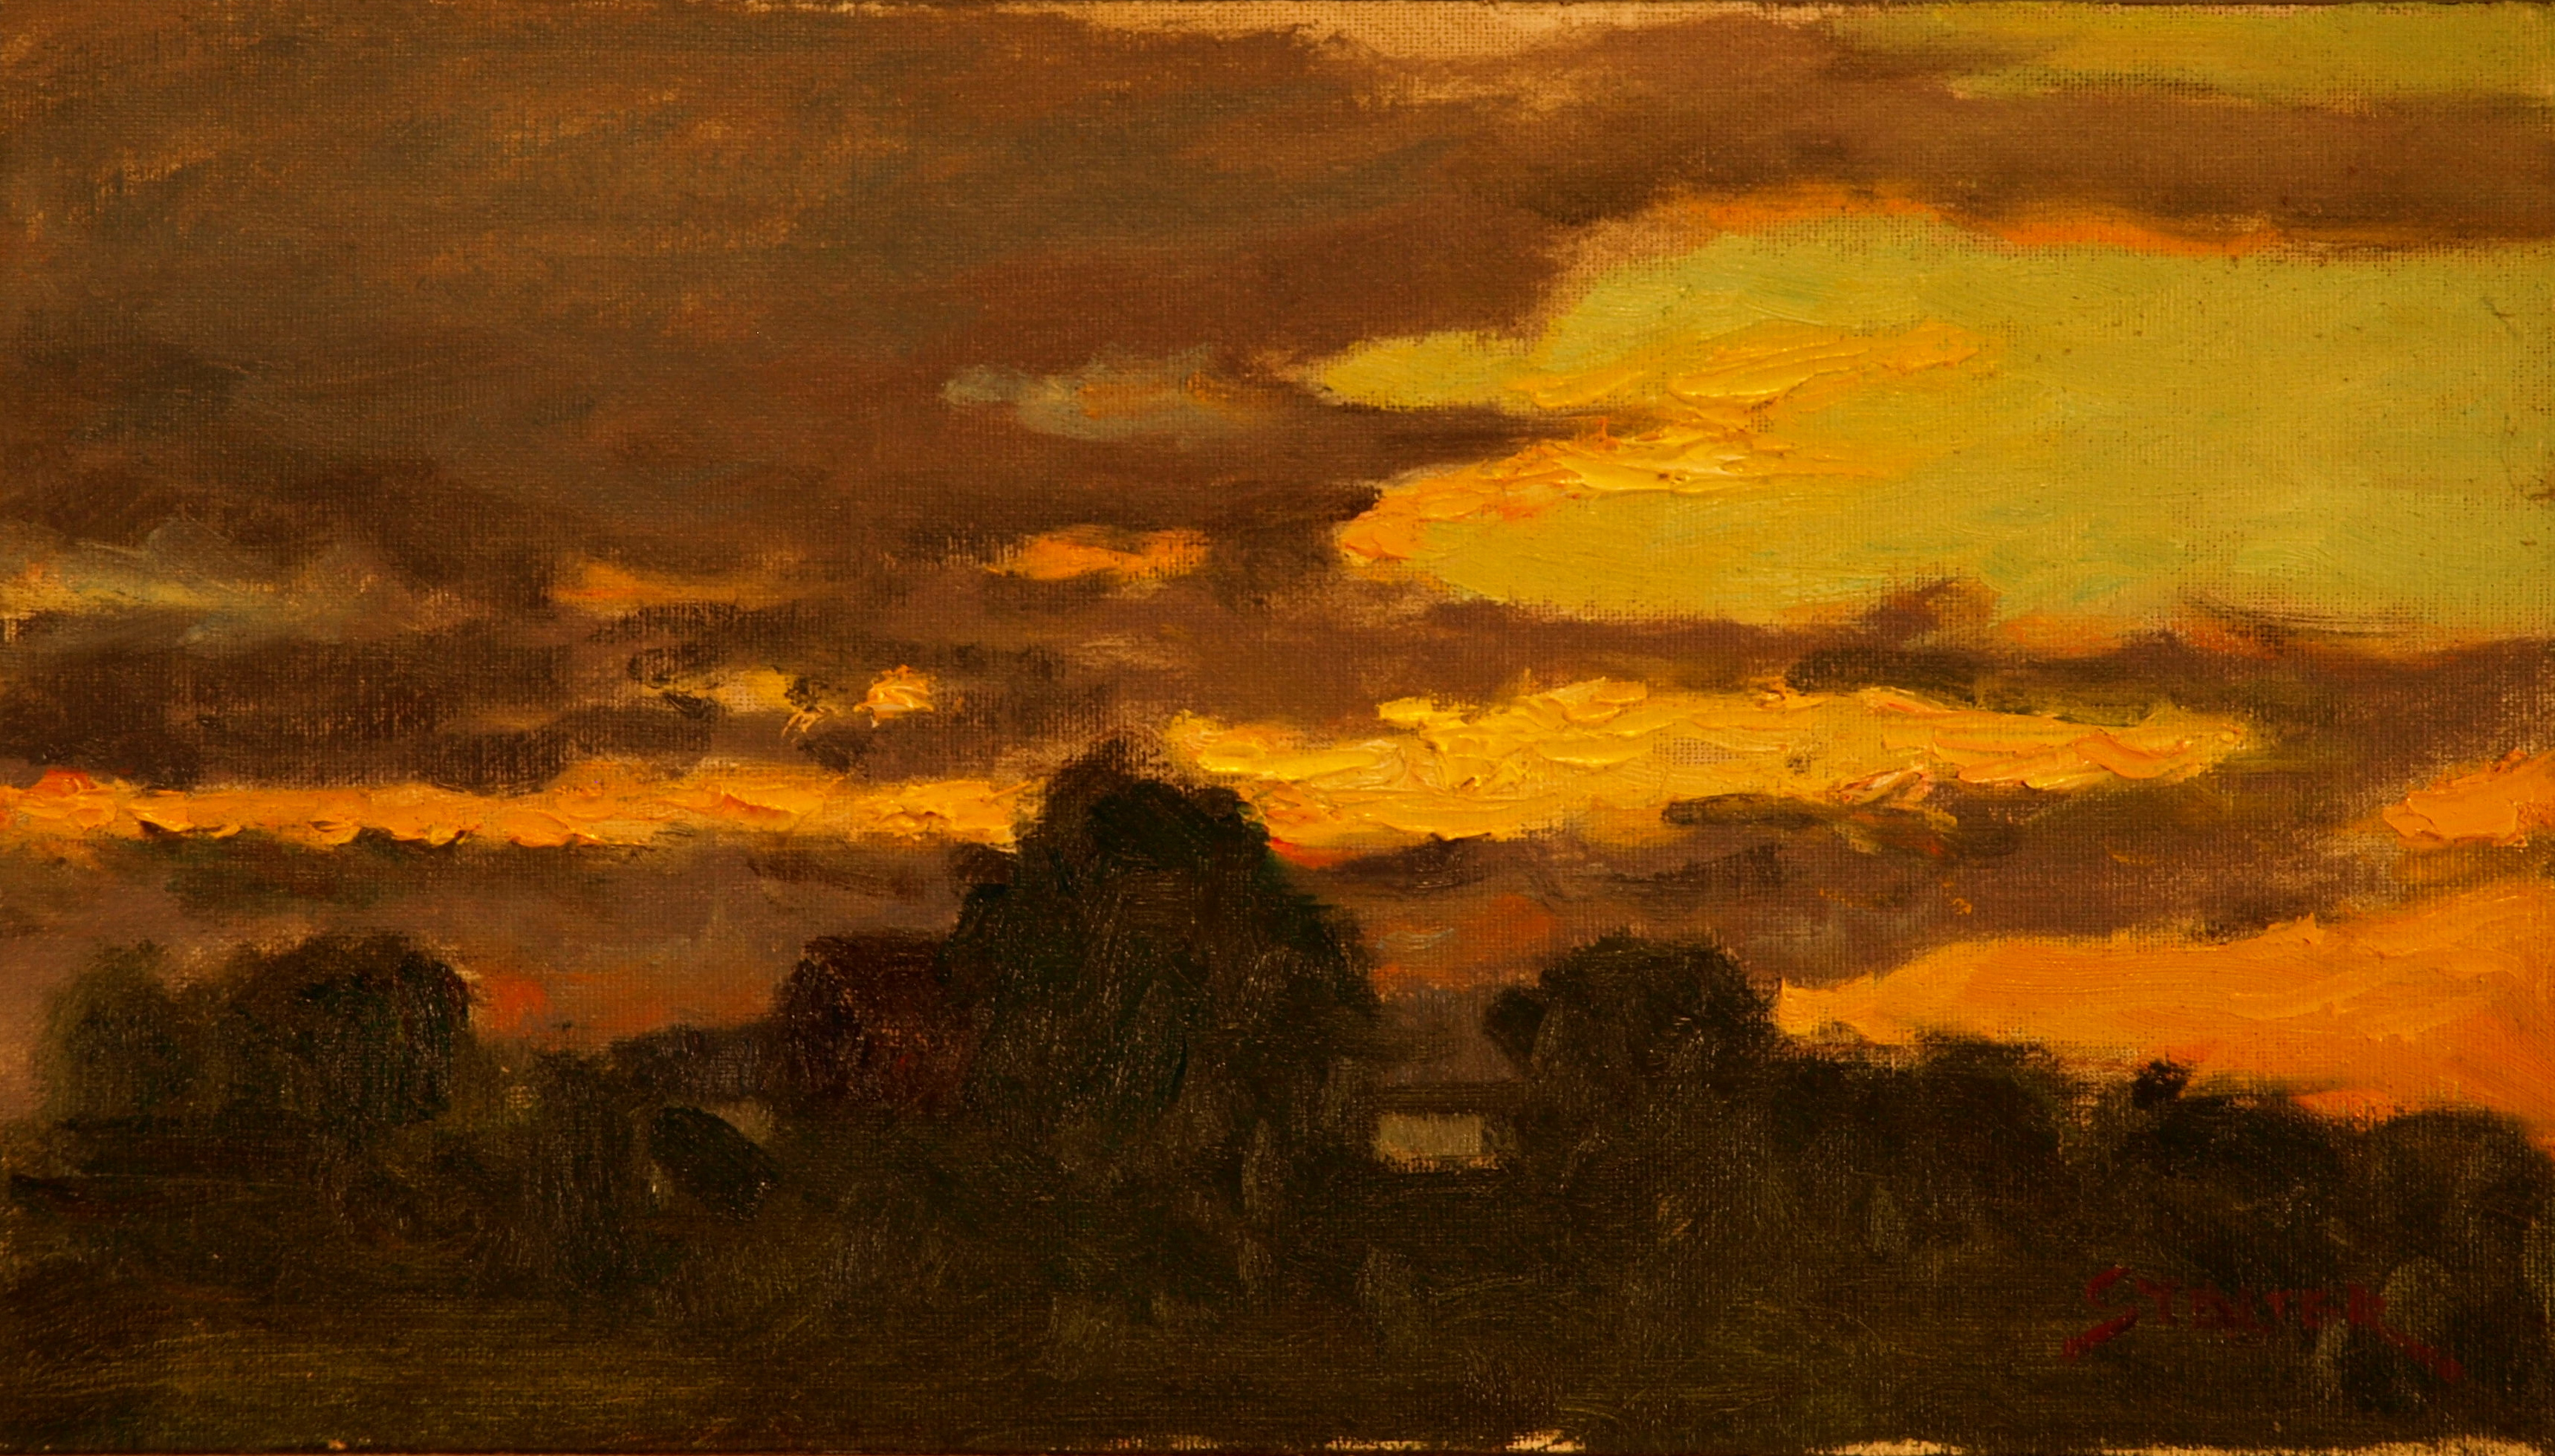 Spectacular Sunset, Oil on Canvas on Panel, 8 x 14 Inches, by Richard Stalter, $225